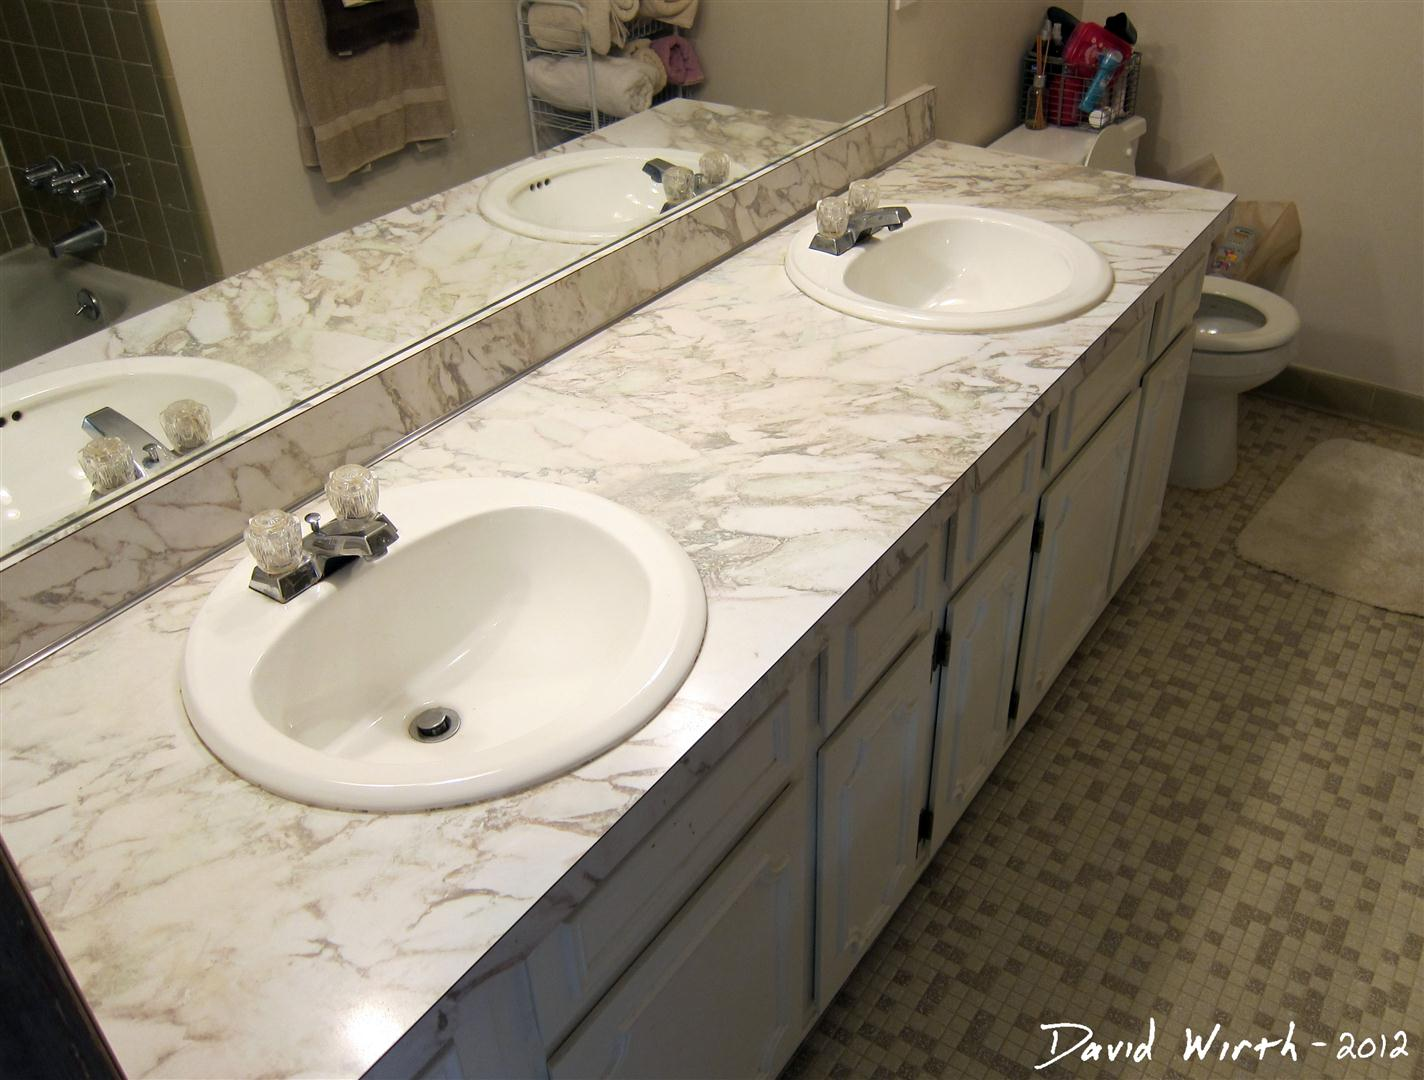 Bathroom Sink Photos : Bathroom Sink - How to Install a Faucet